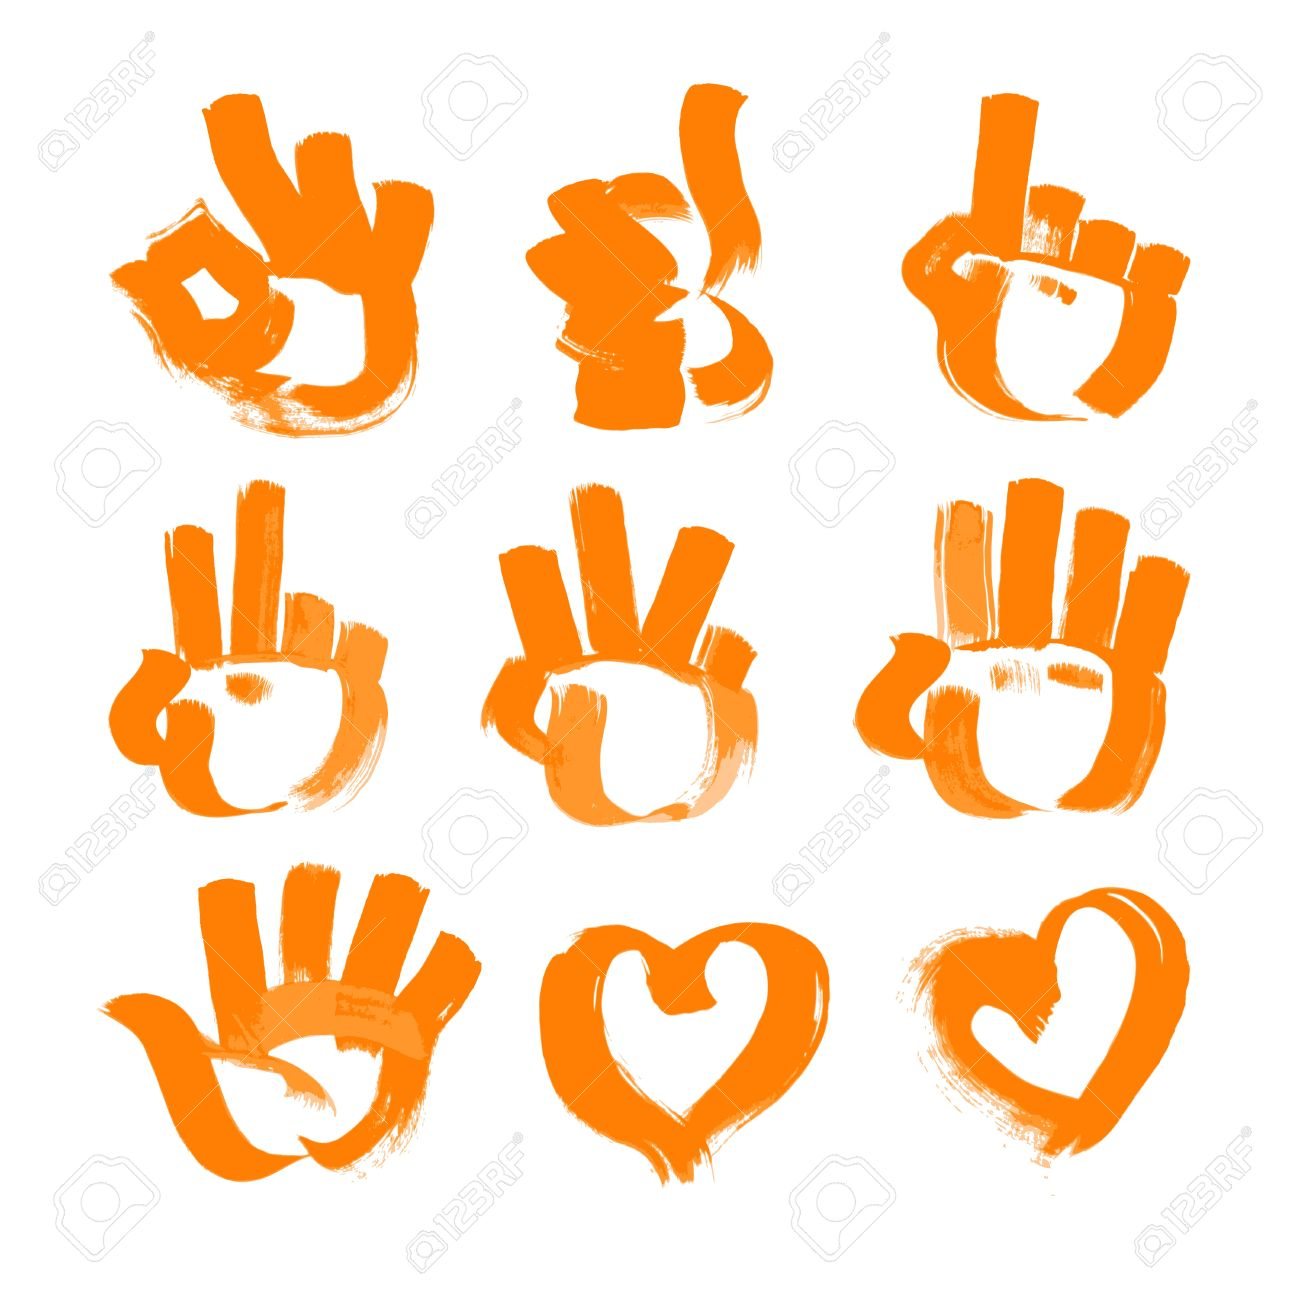 orange brush strokes - numerals- hands, heart and ok symbols painted textured brush. Stock Vector - 15660659